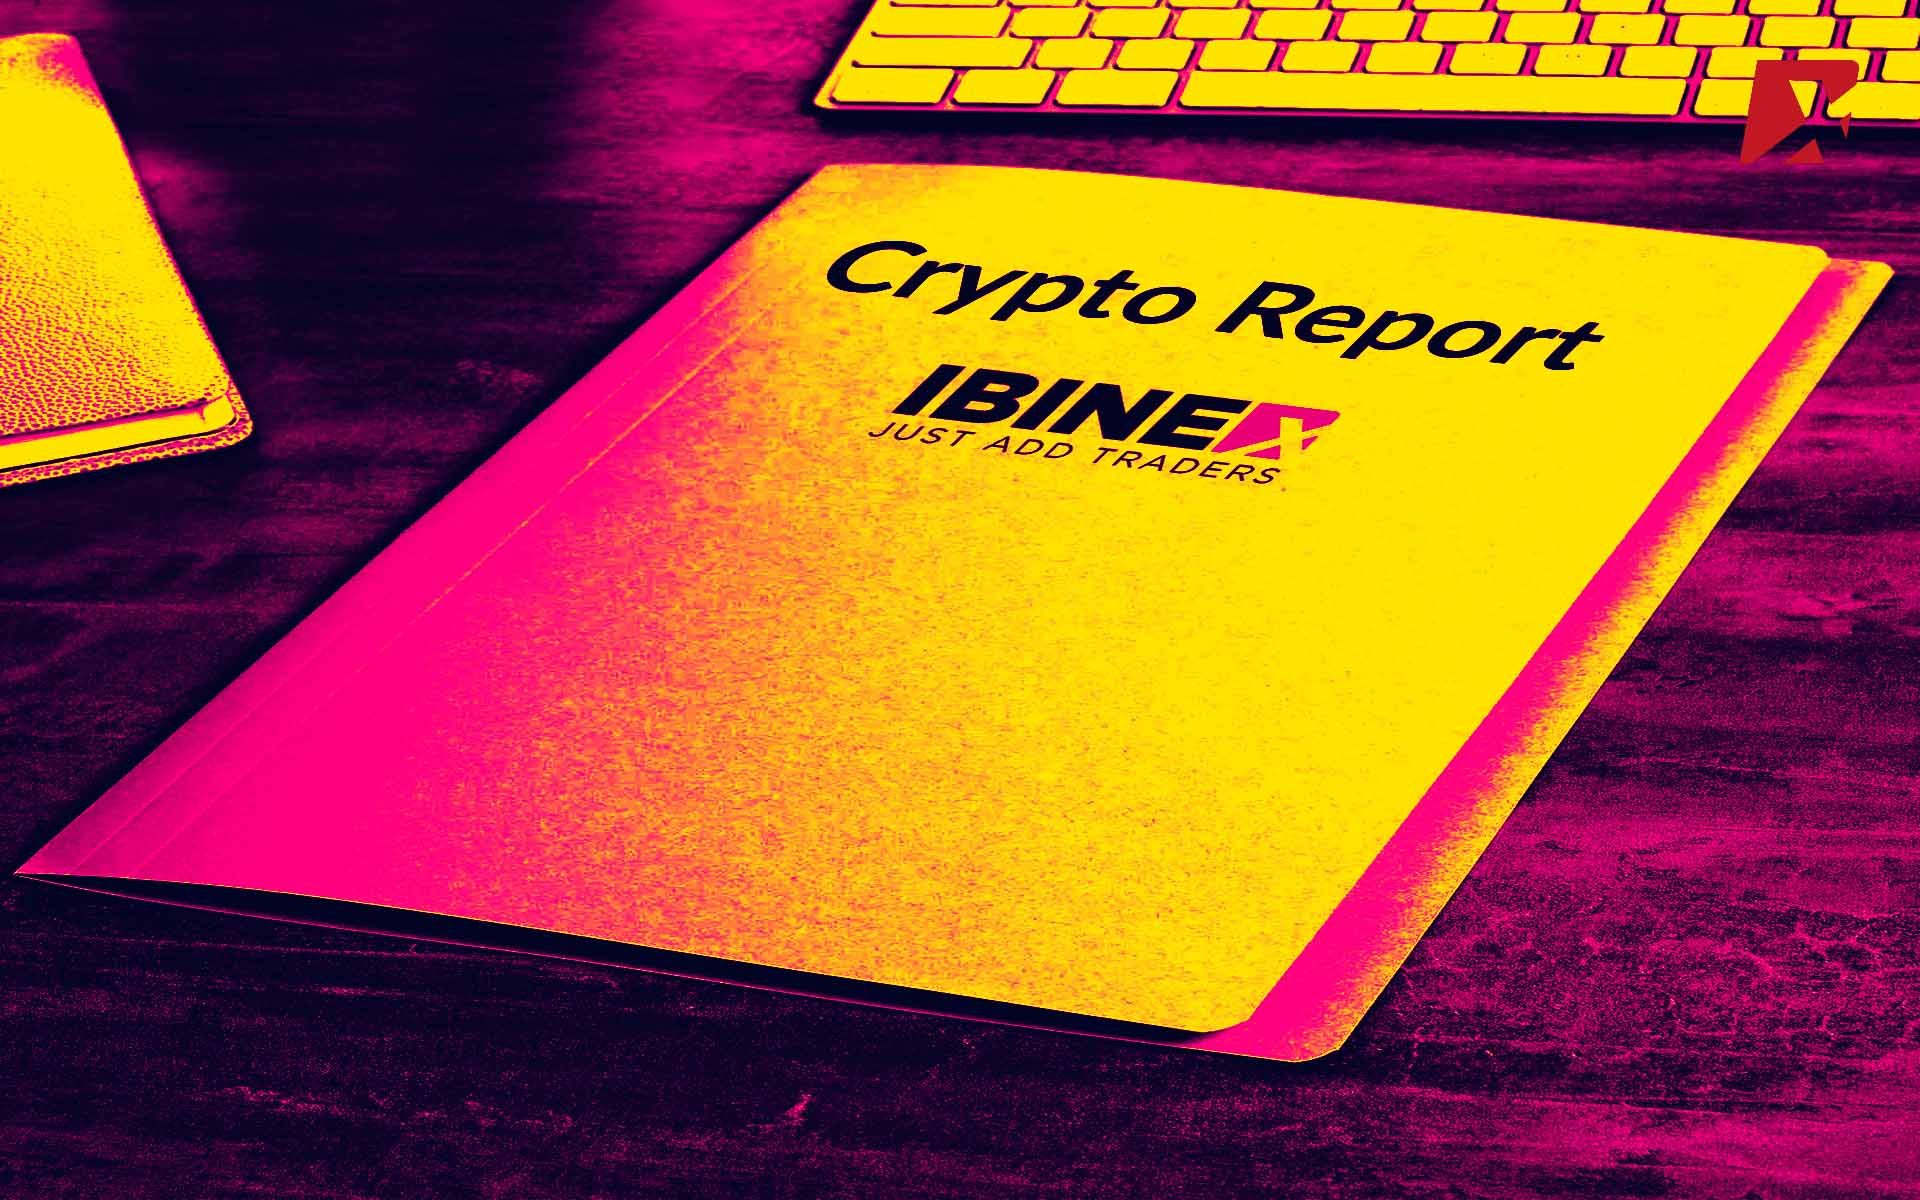 Ibinex Releases Detailed Cryptocurrency Market Report To The World